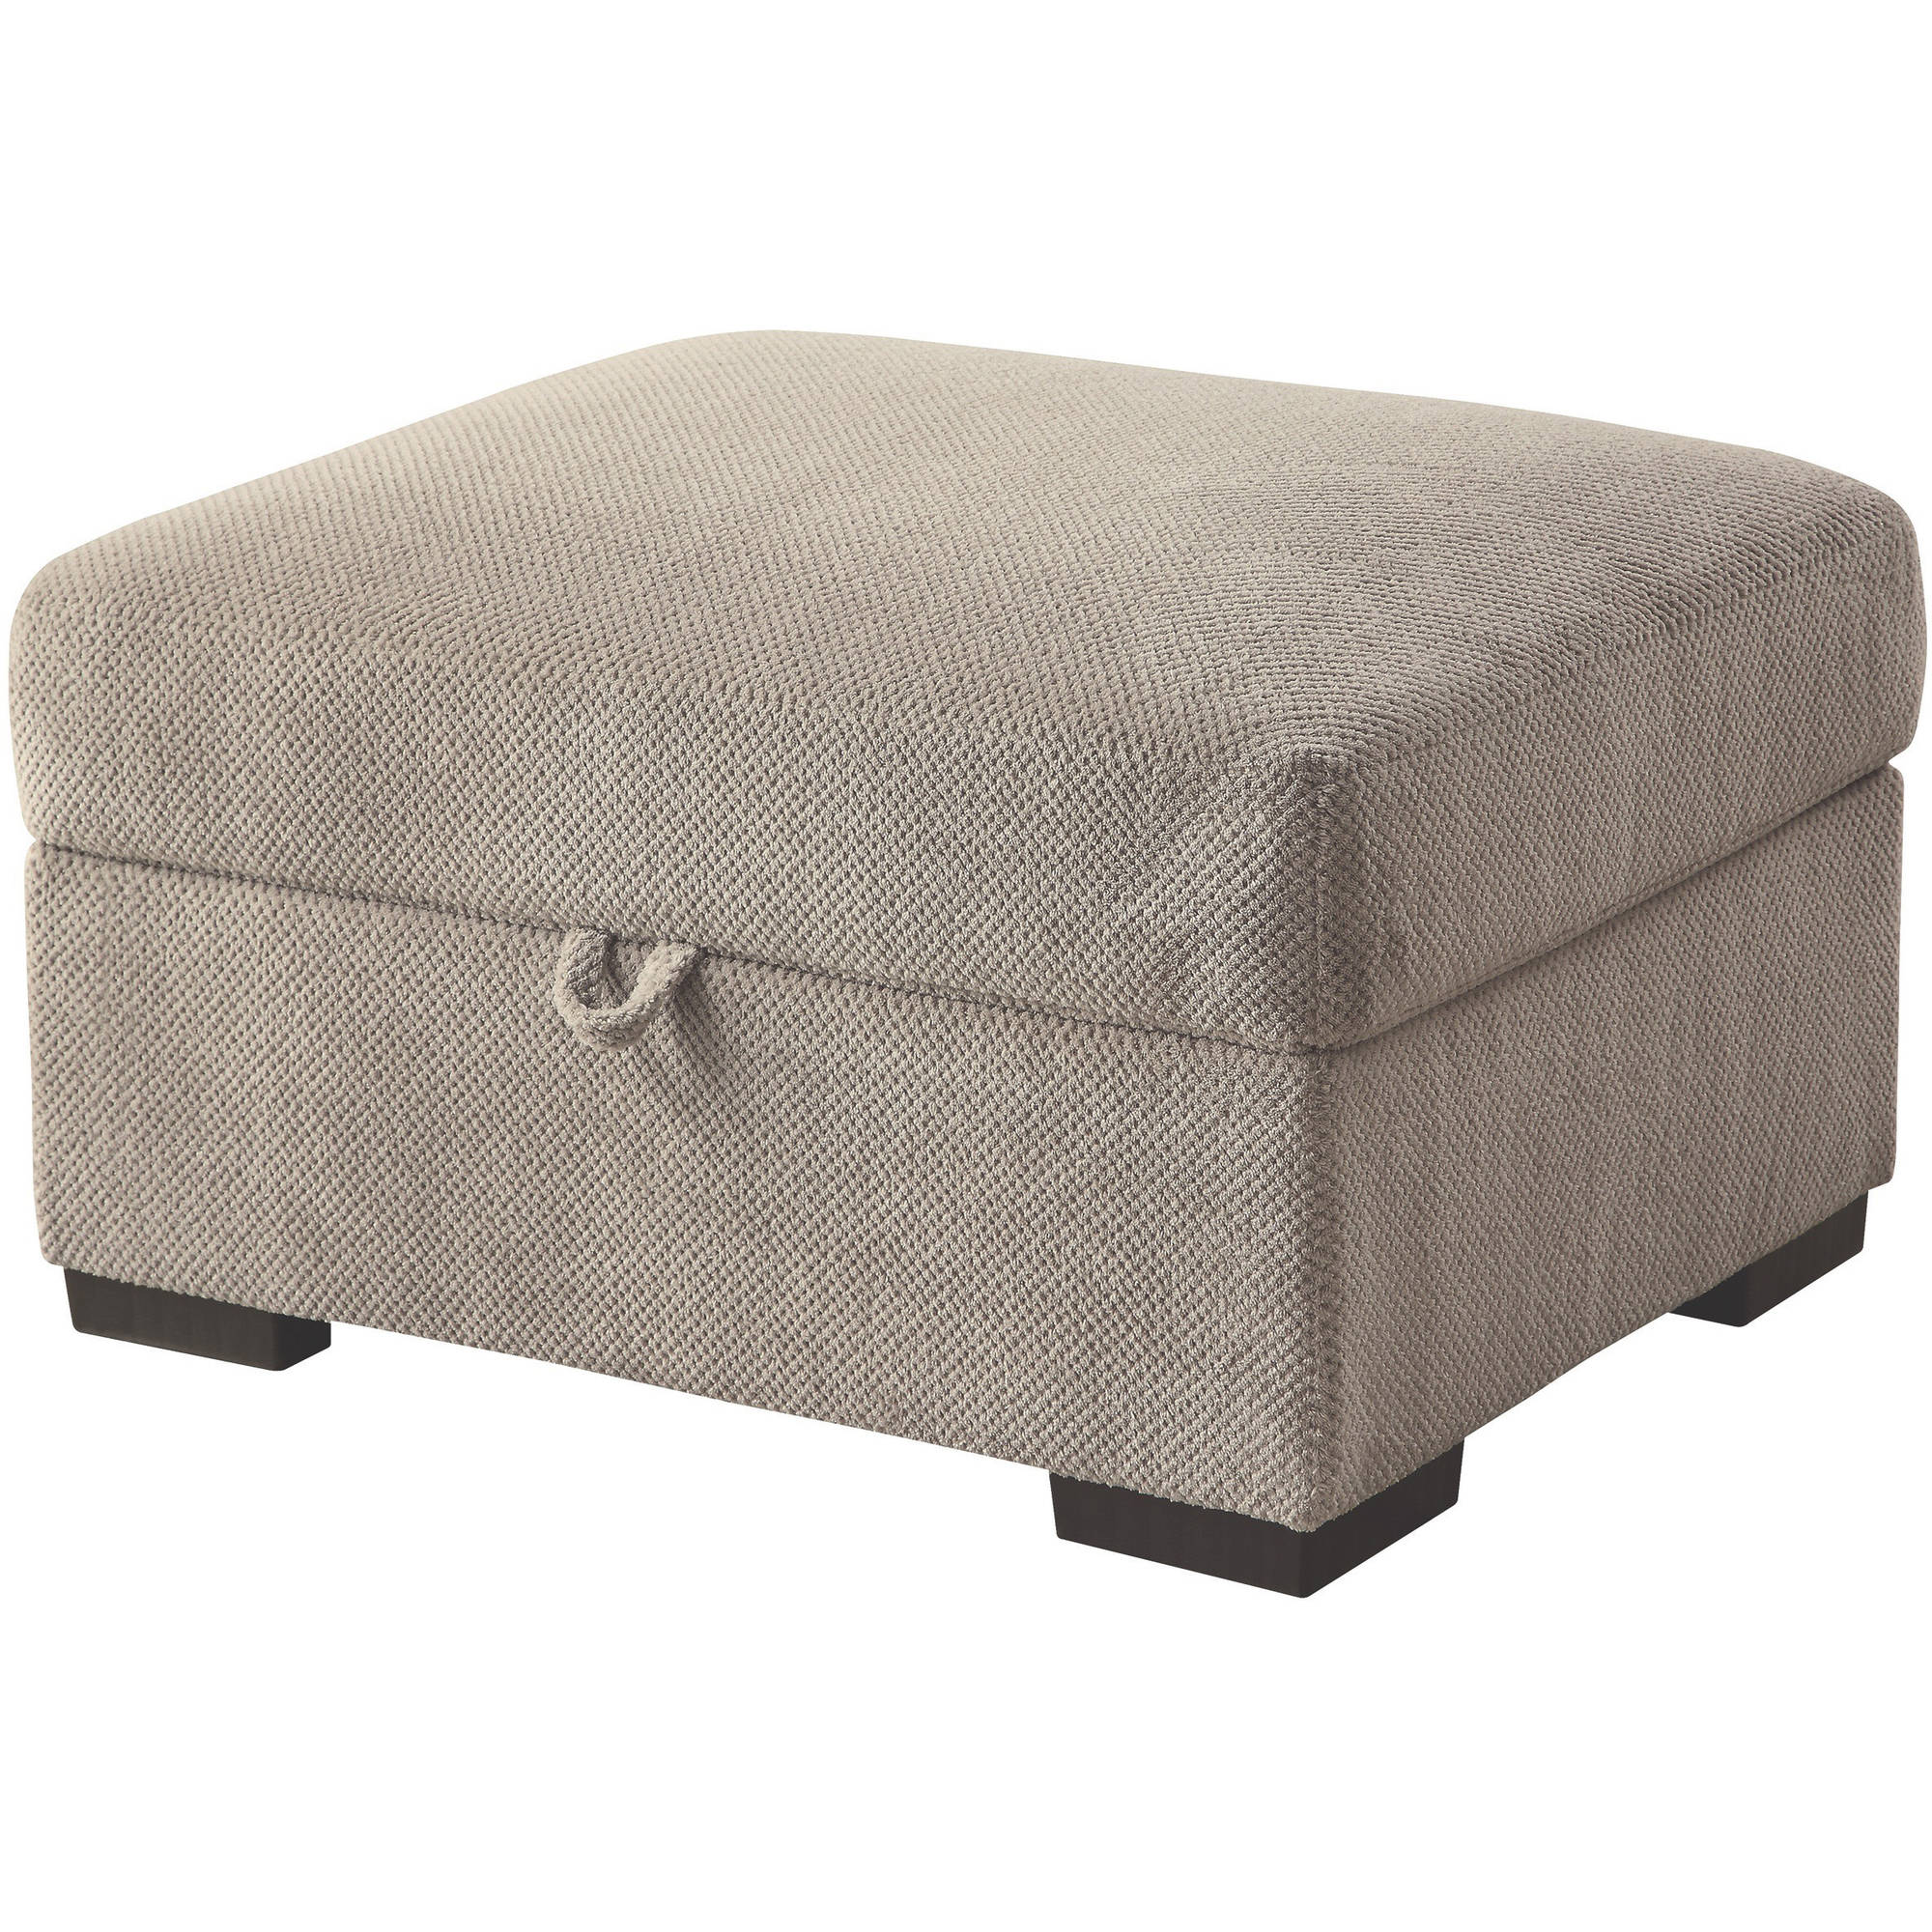 Coaster Olson Fabric Ottoman in Taupe